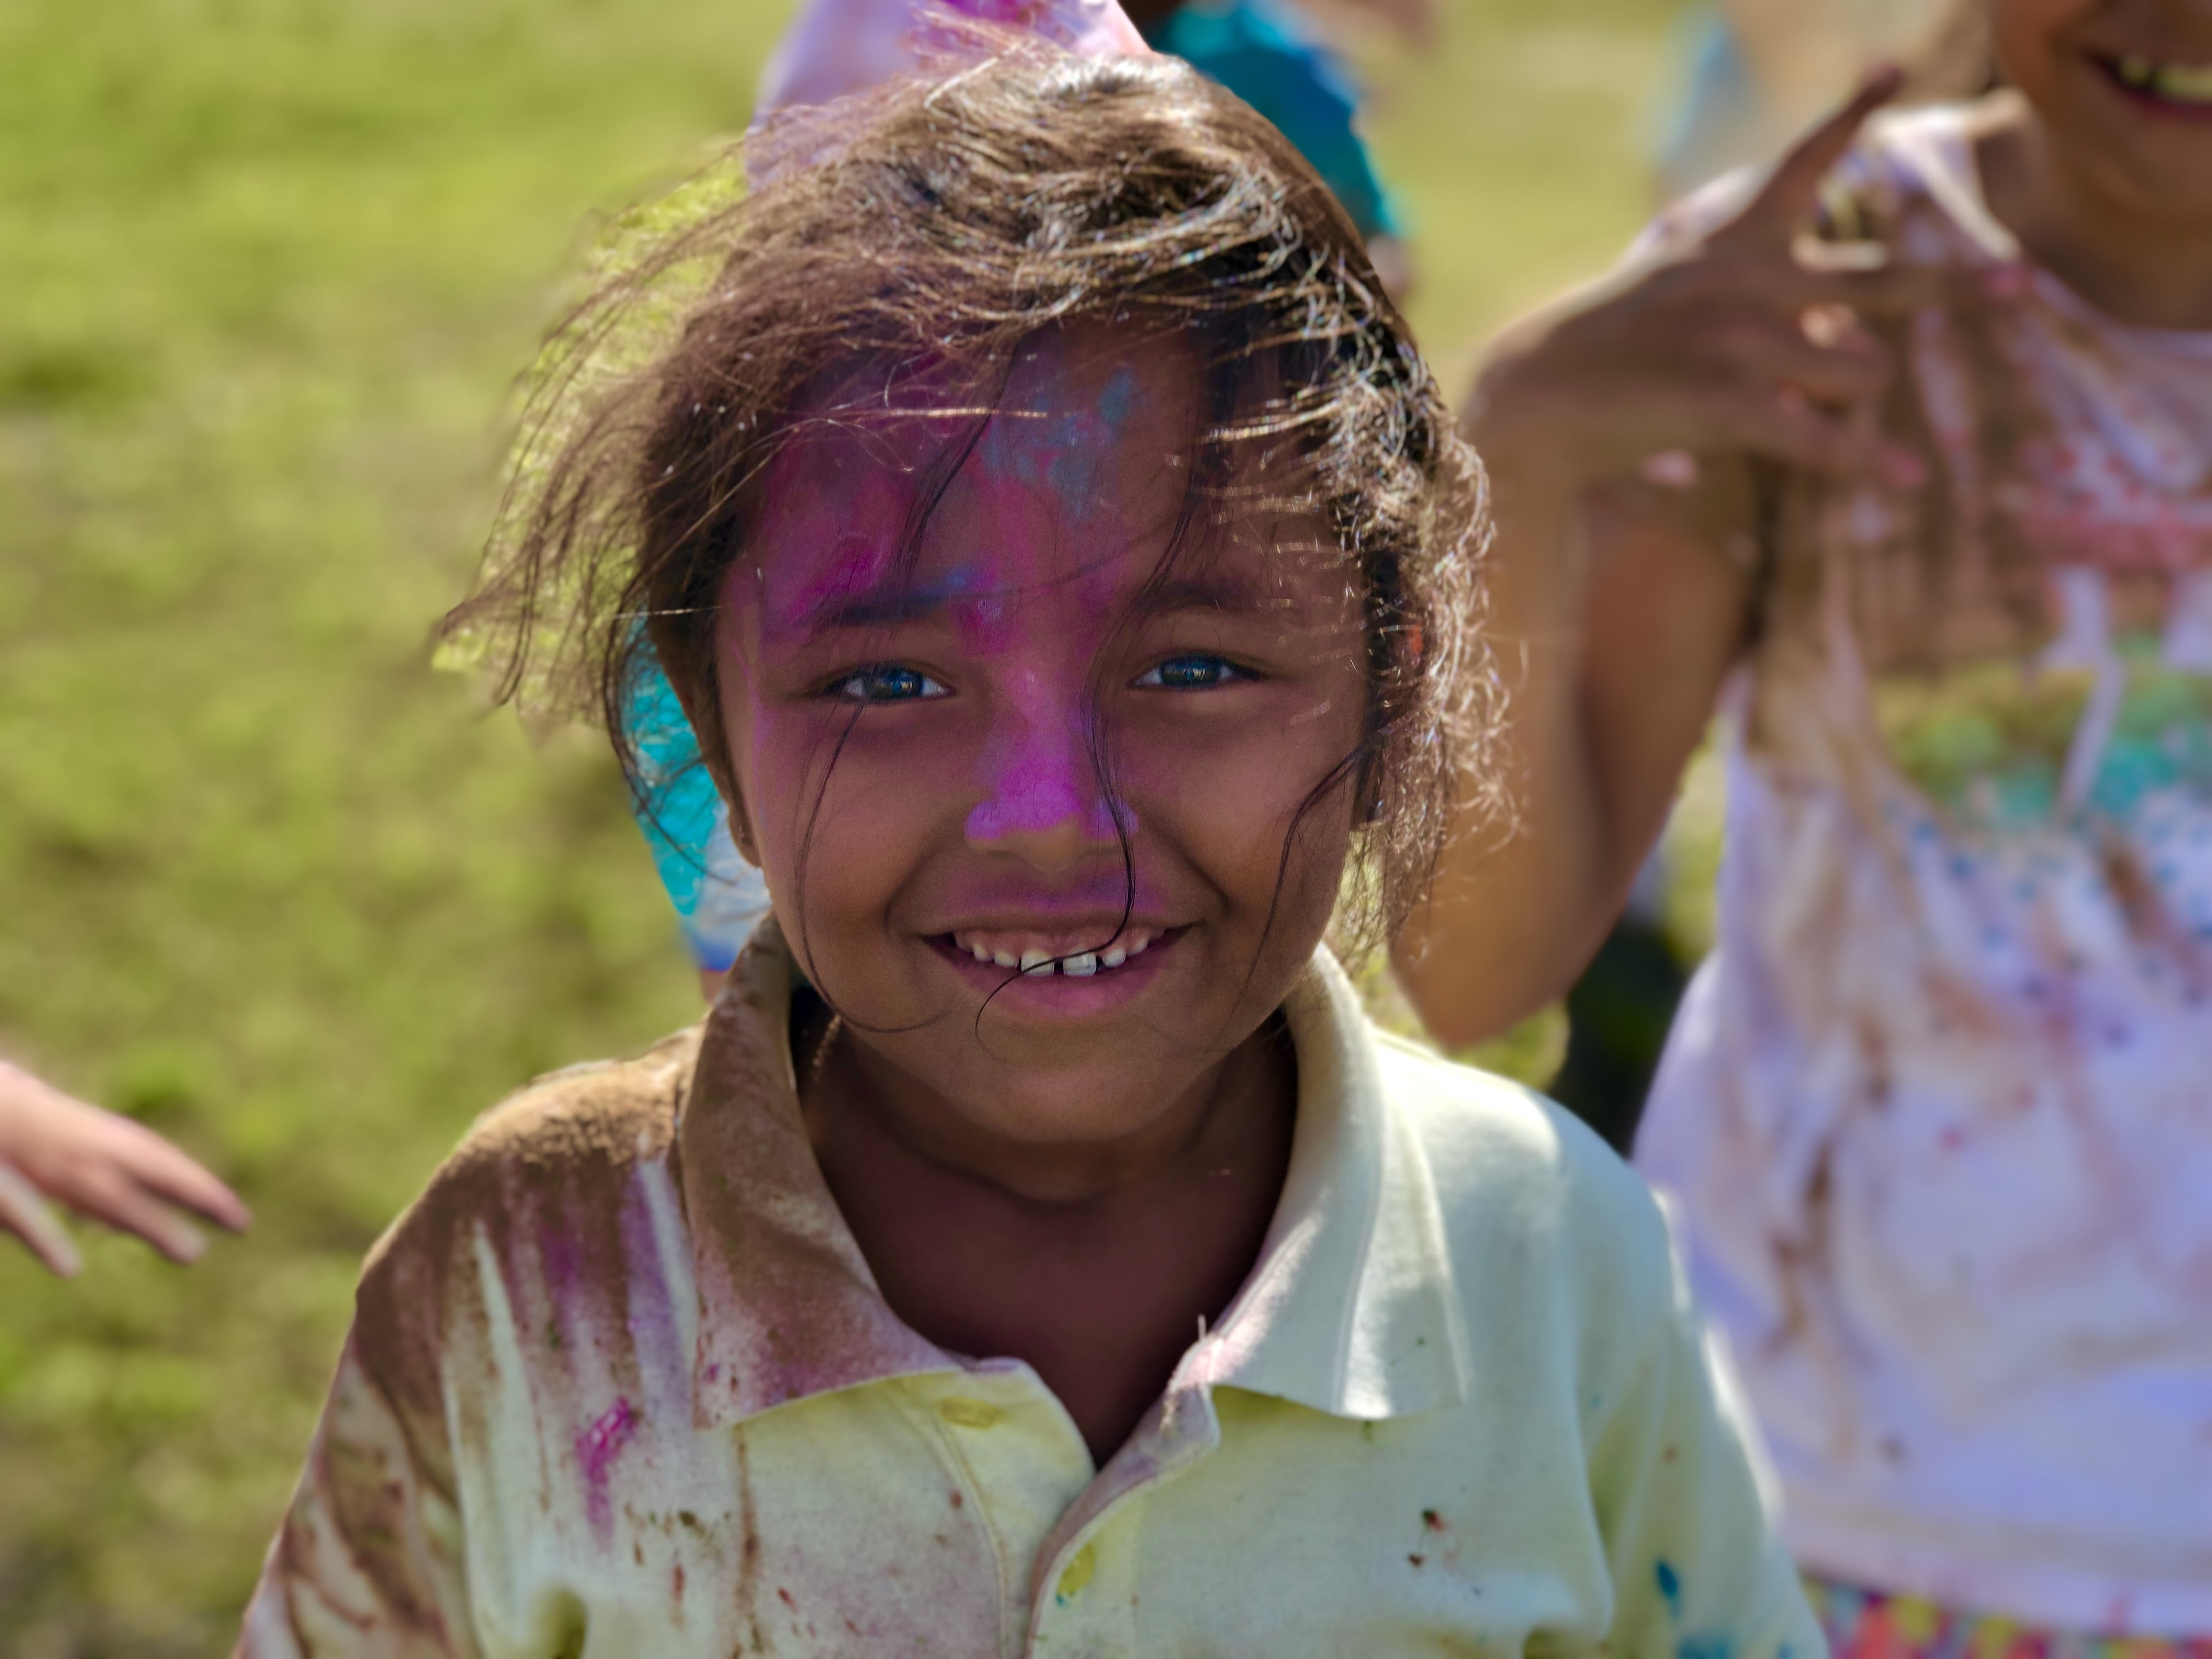 Spring Camp - Color Run Image number 2